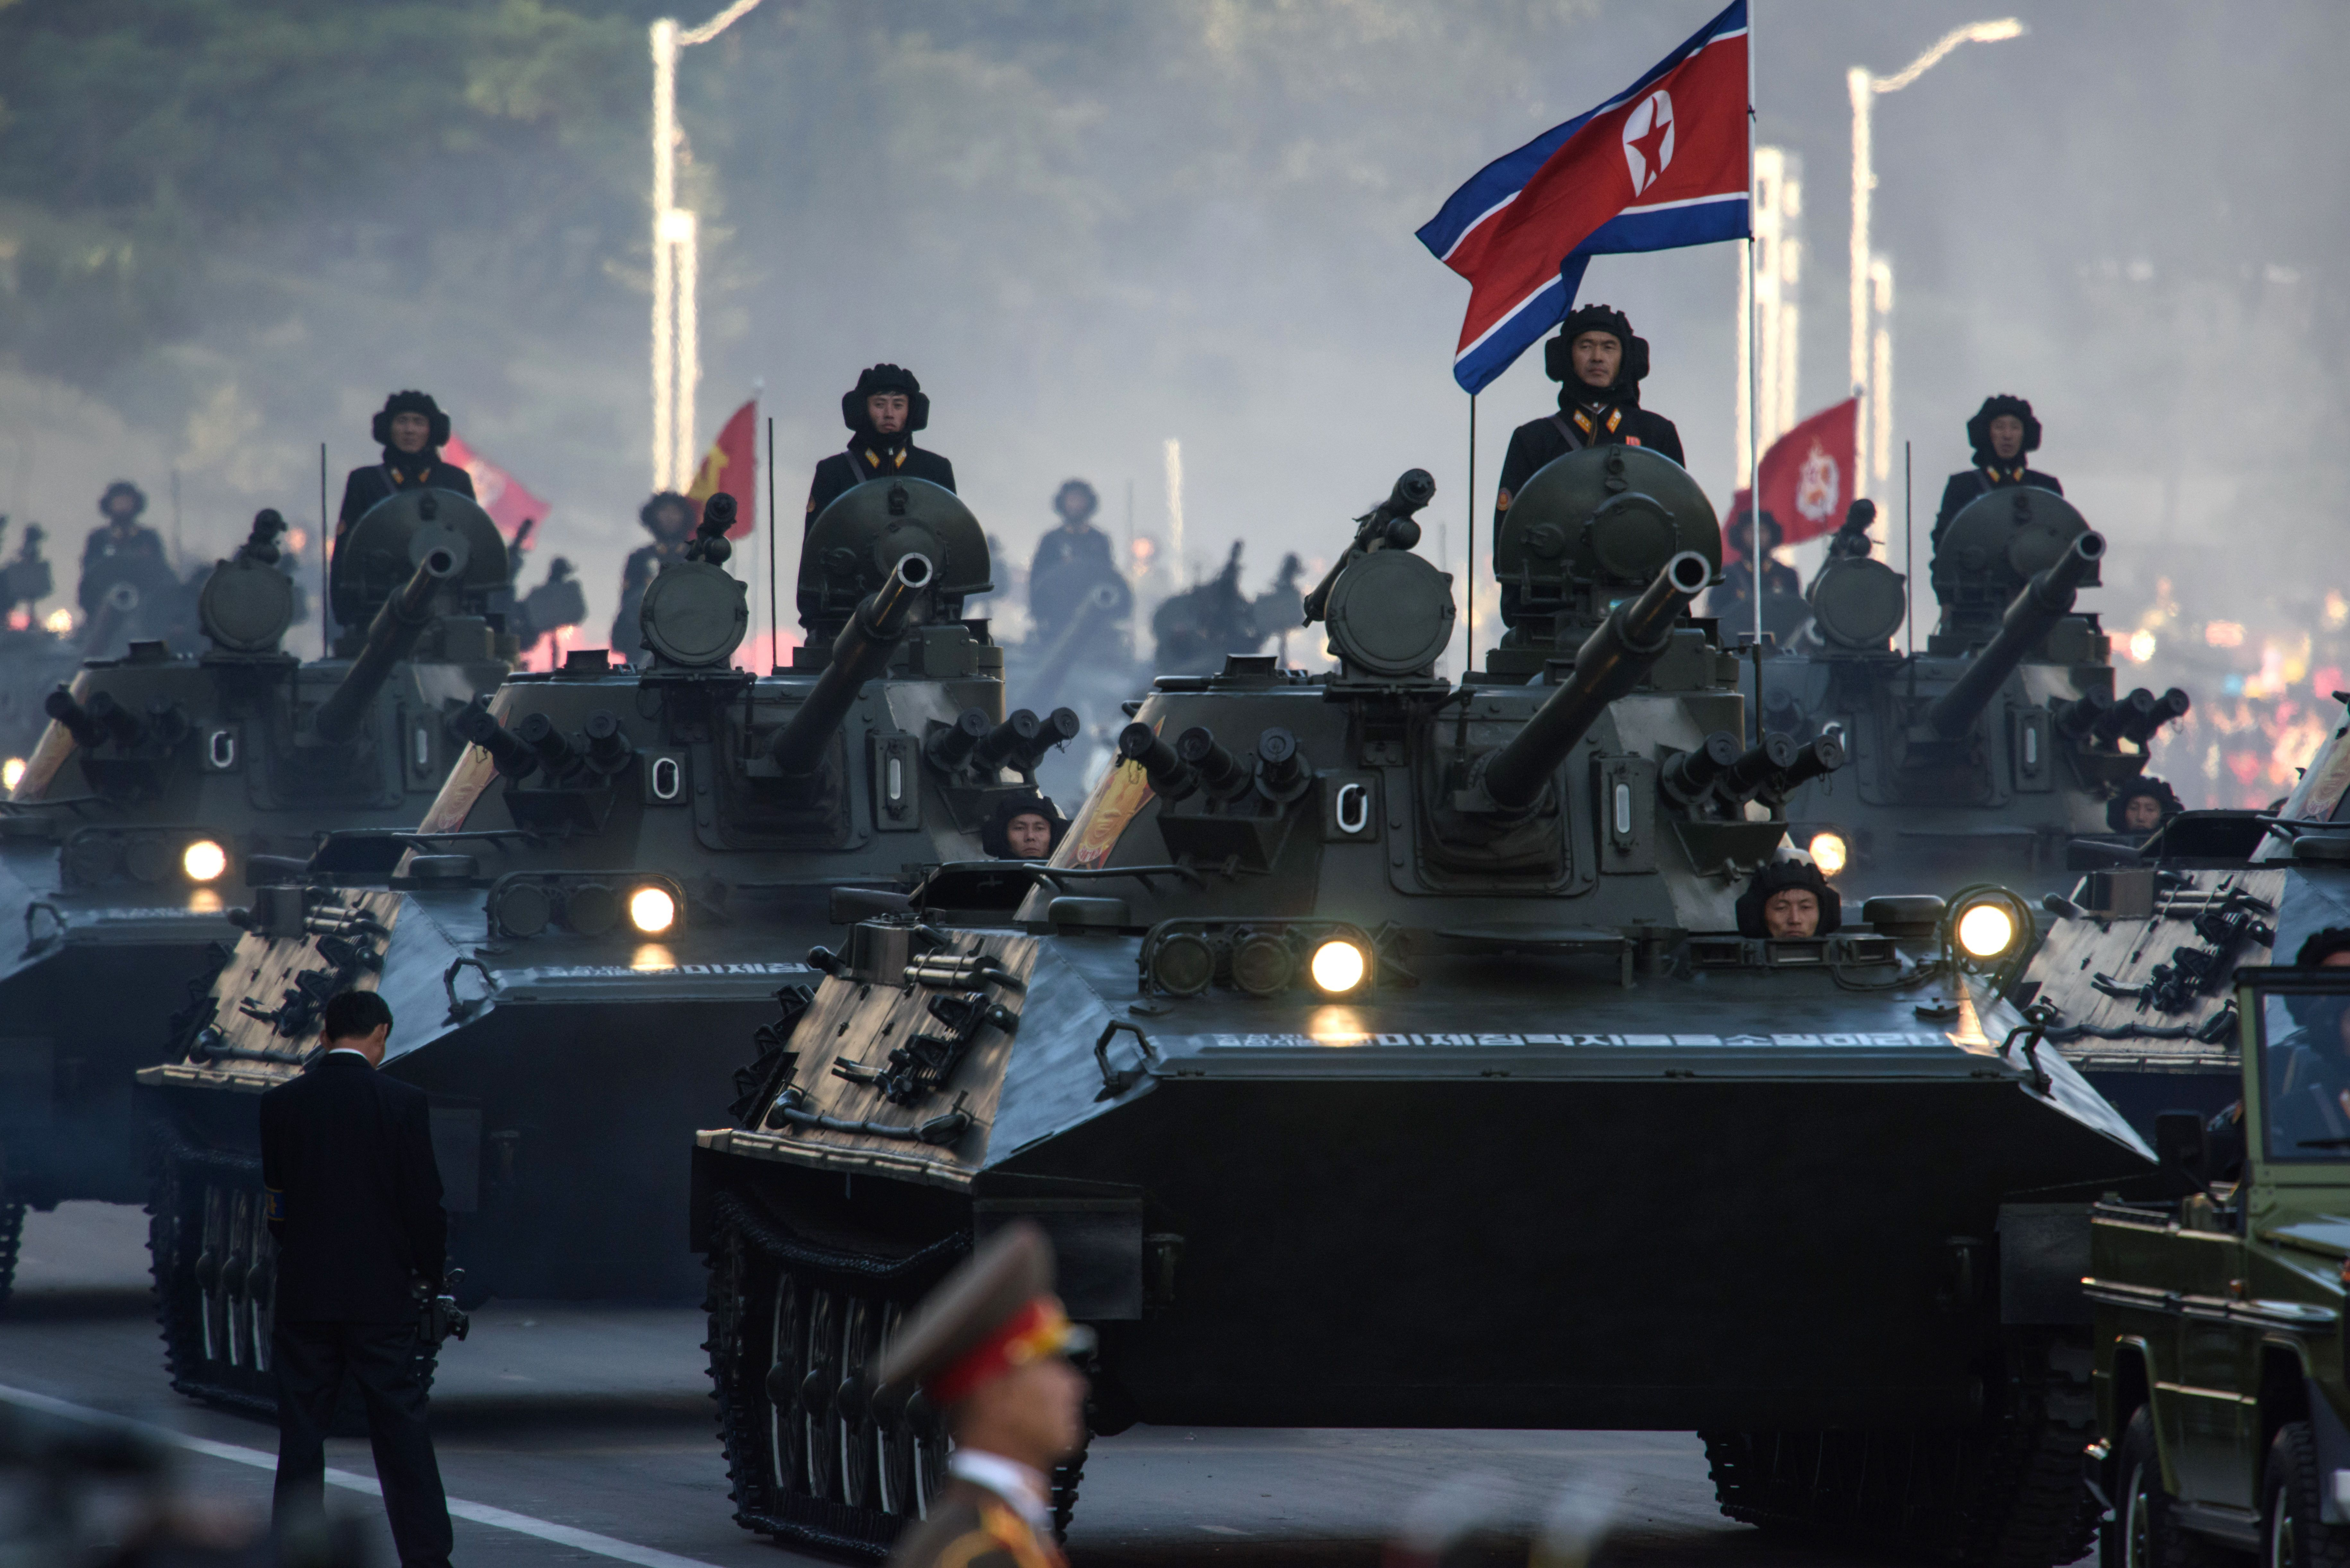 North Korean soldiers ride atop armoured vehicles during a mass military parade at Kim Il-Sung square in Pyongyang on Oct. 10, 2015.